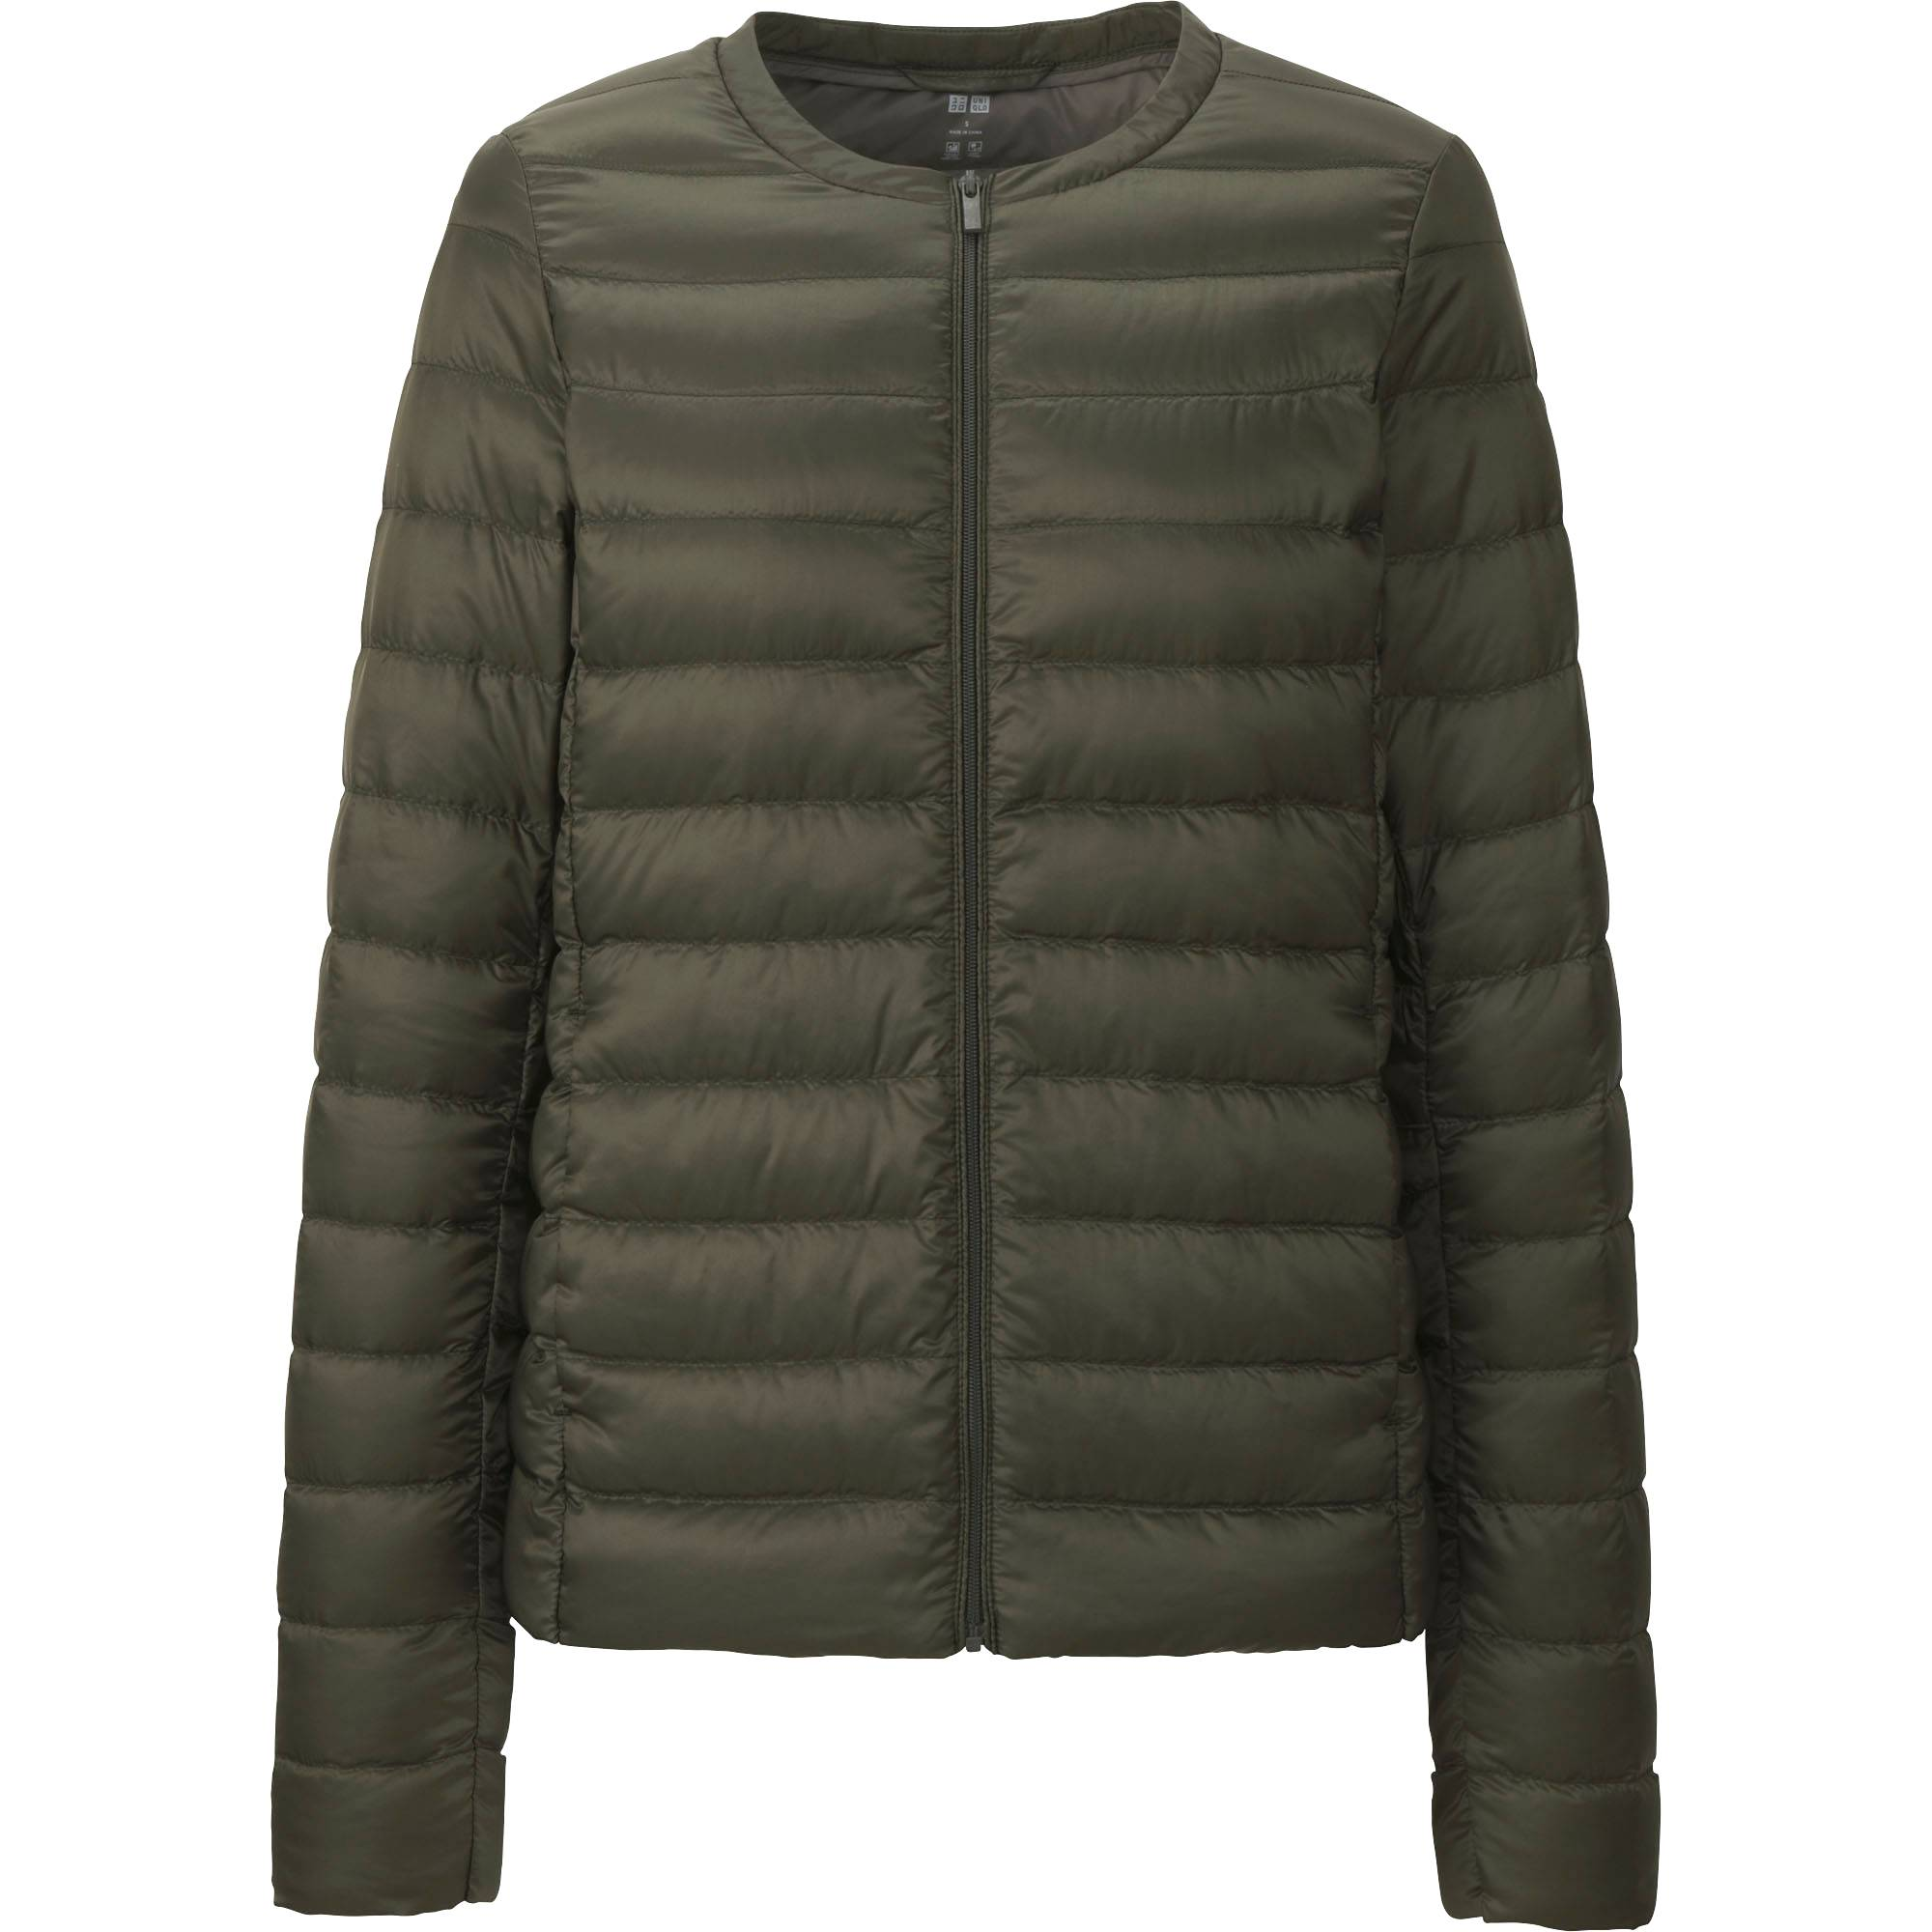 Leather jacket uniqlo - Women Ultra Light Down Compact Jacket Olive Small